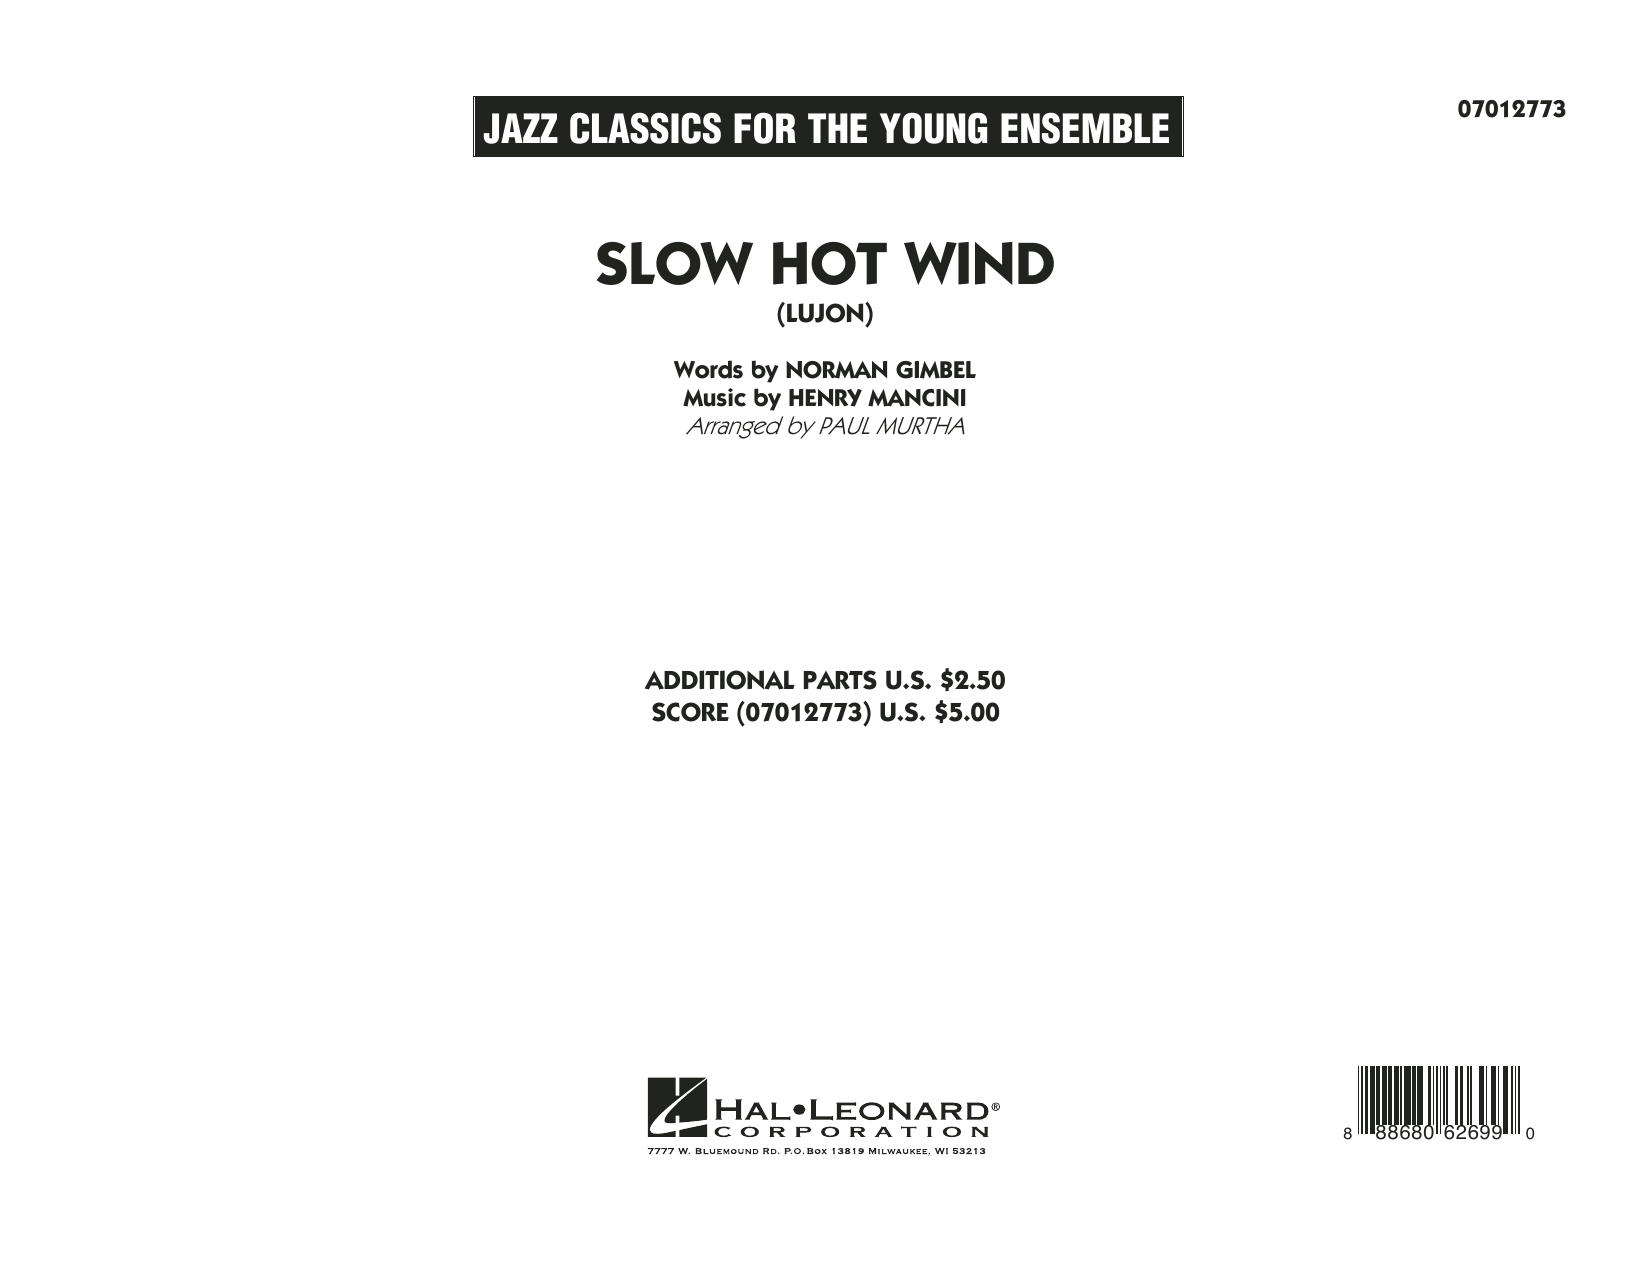 Slow Hot Wind (Lujon) (COMPLETE) sheet music for jazz band by Norman Gimbel